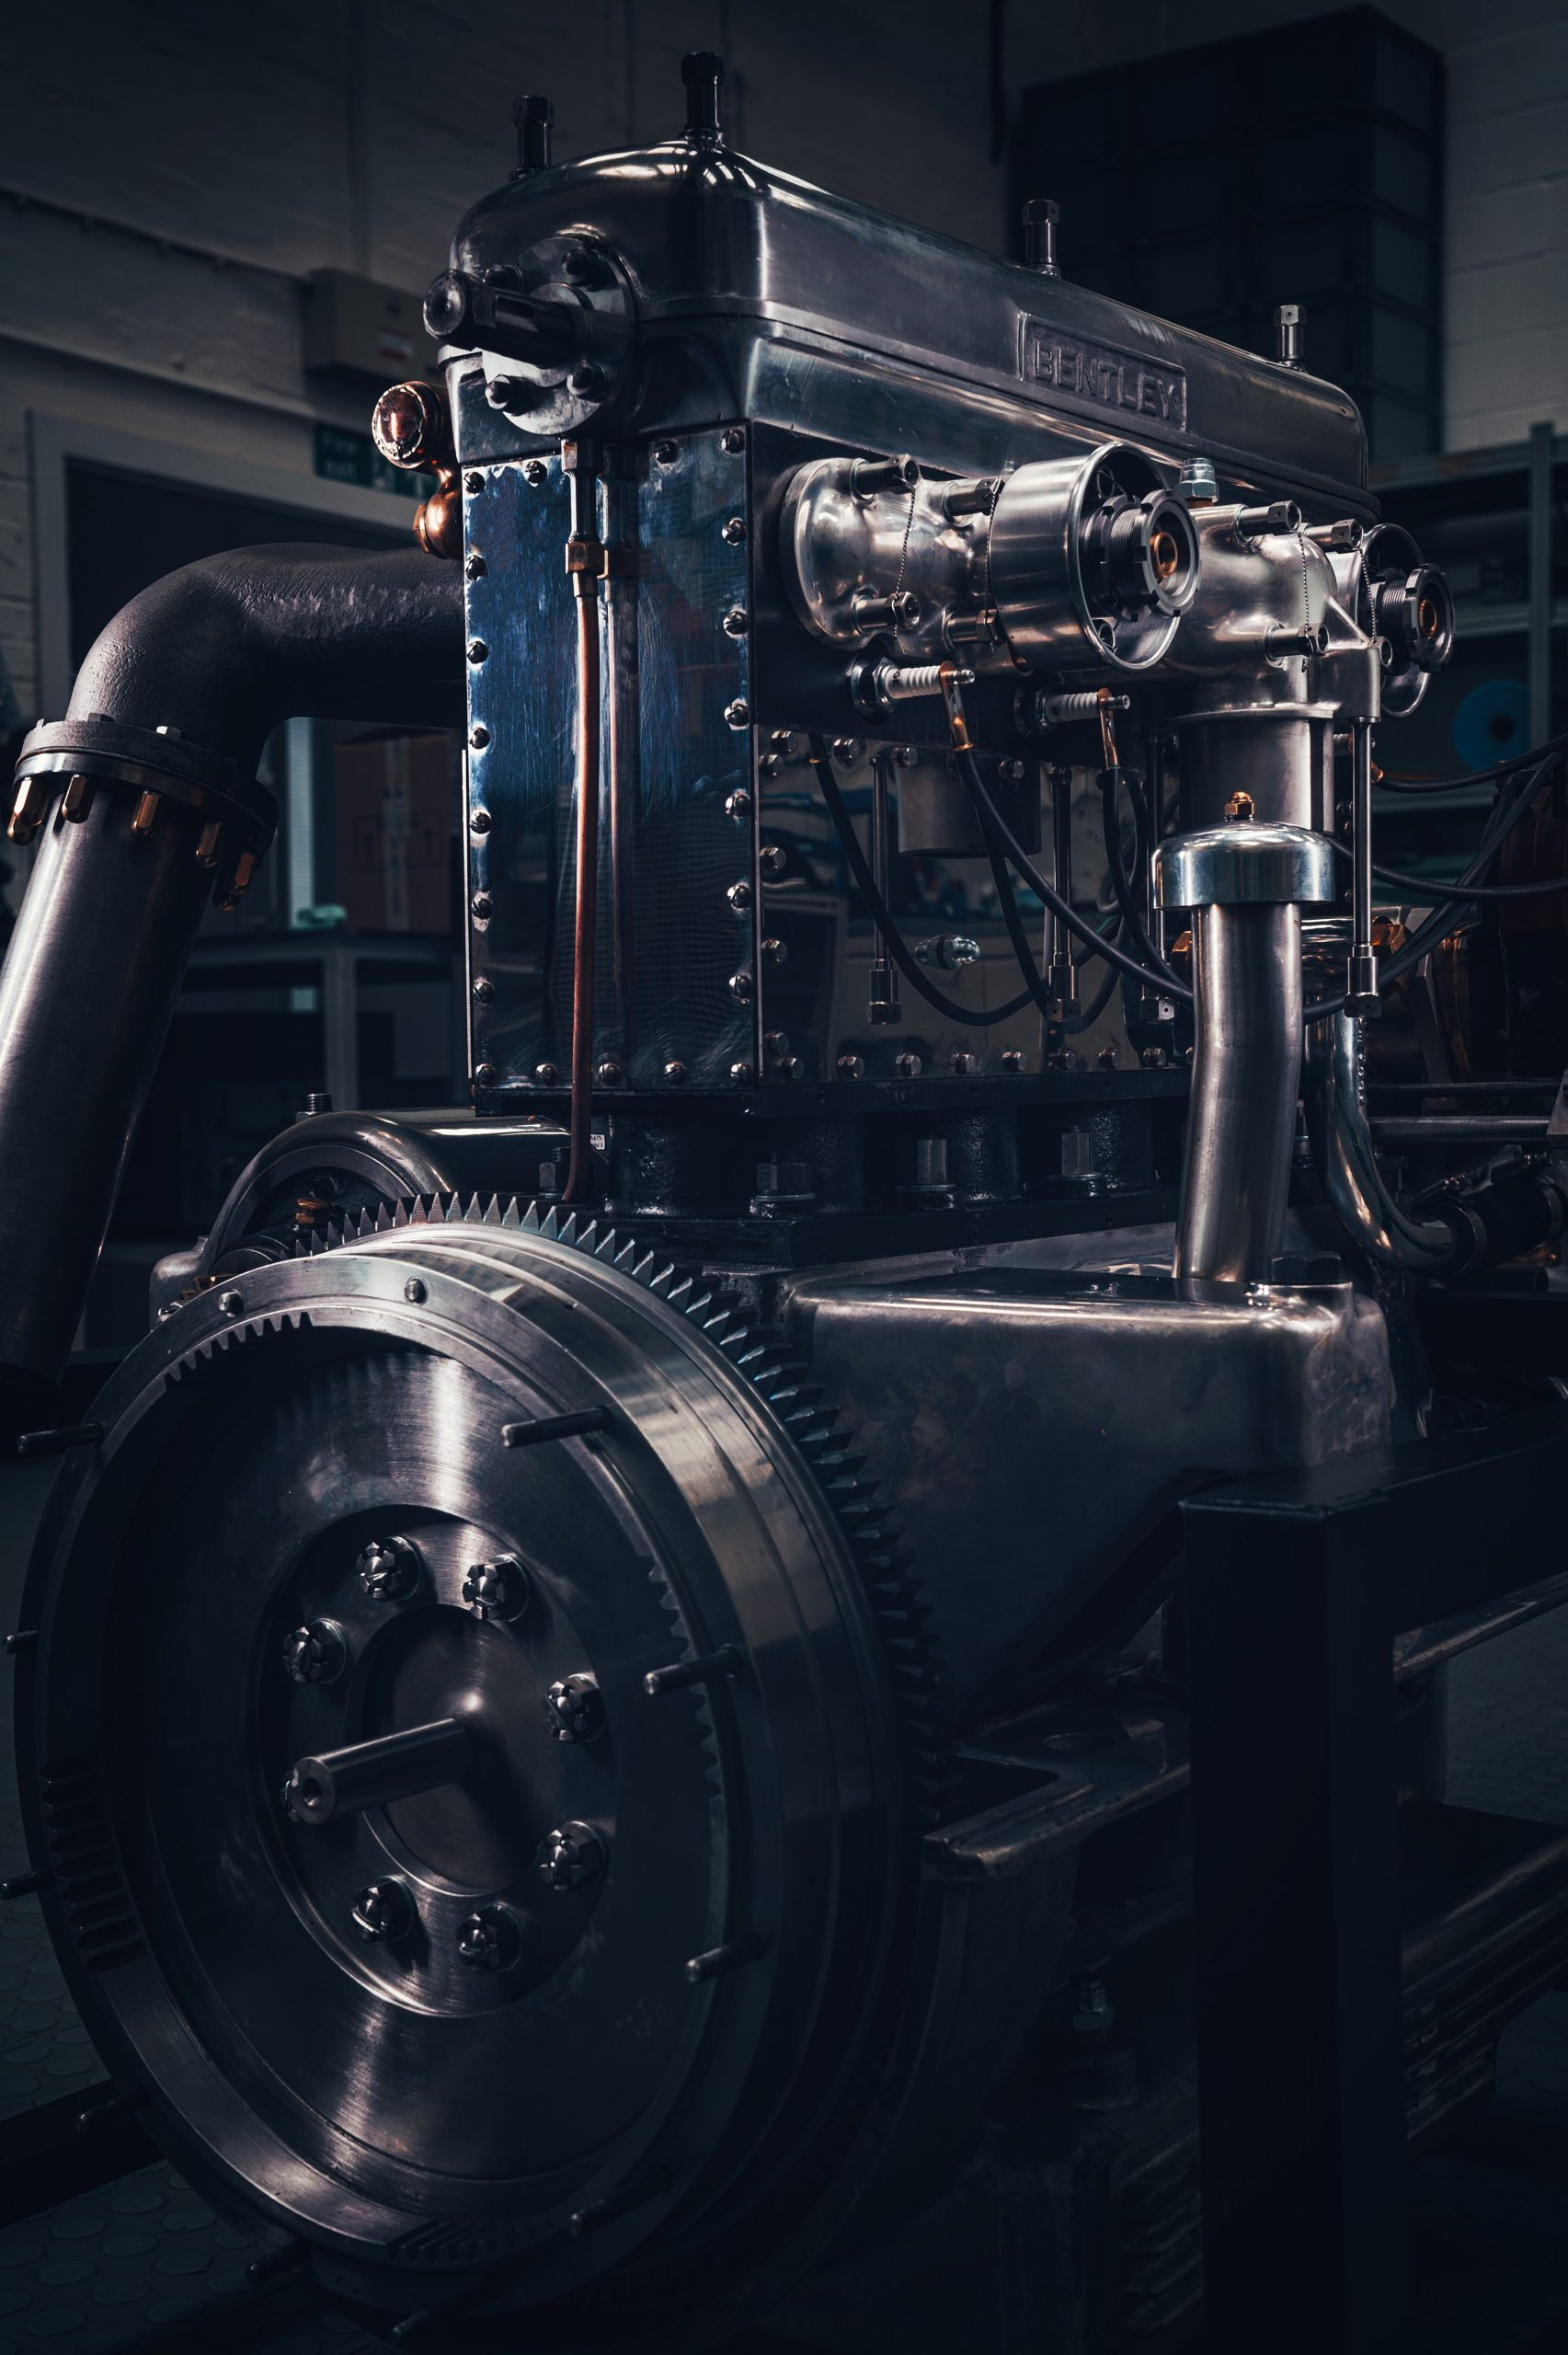 bentley blower continuation engine front three-quarter